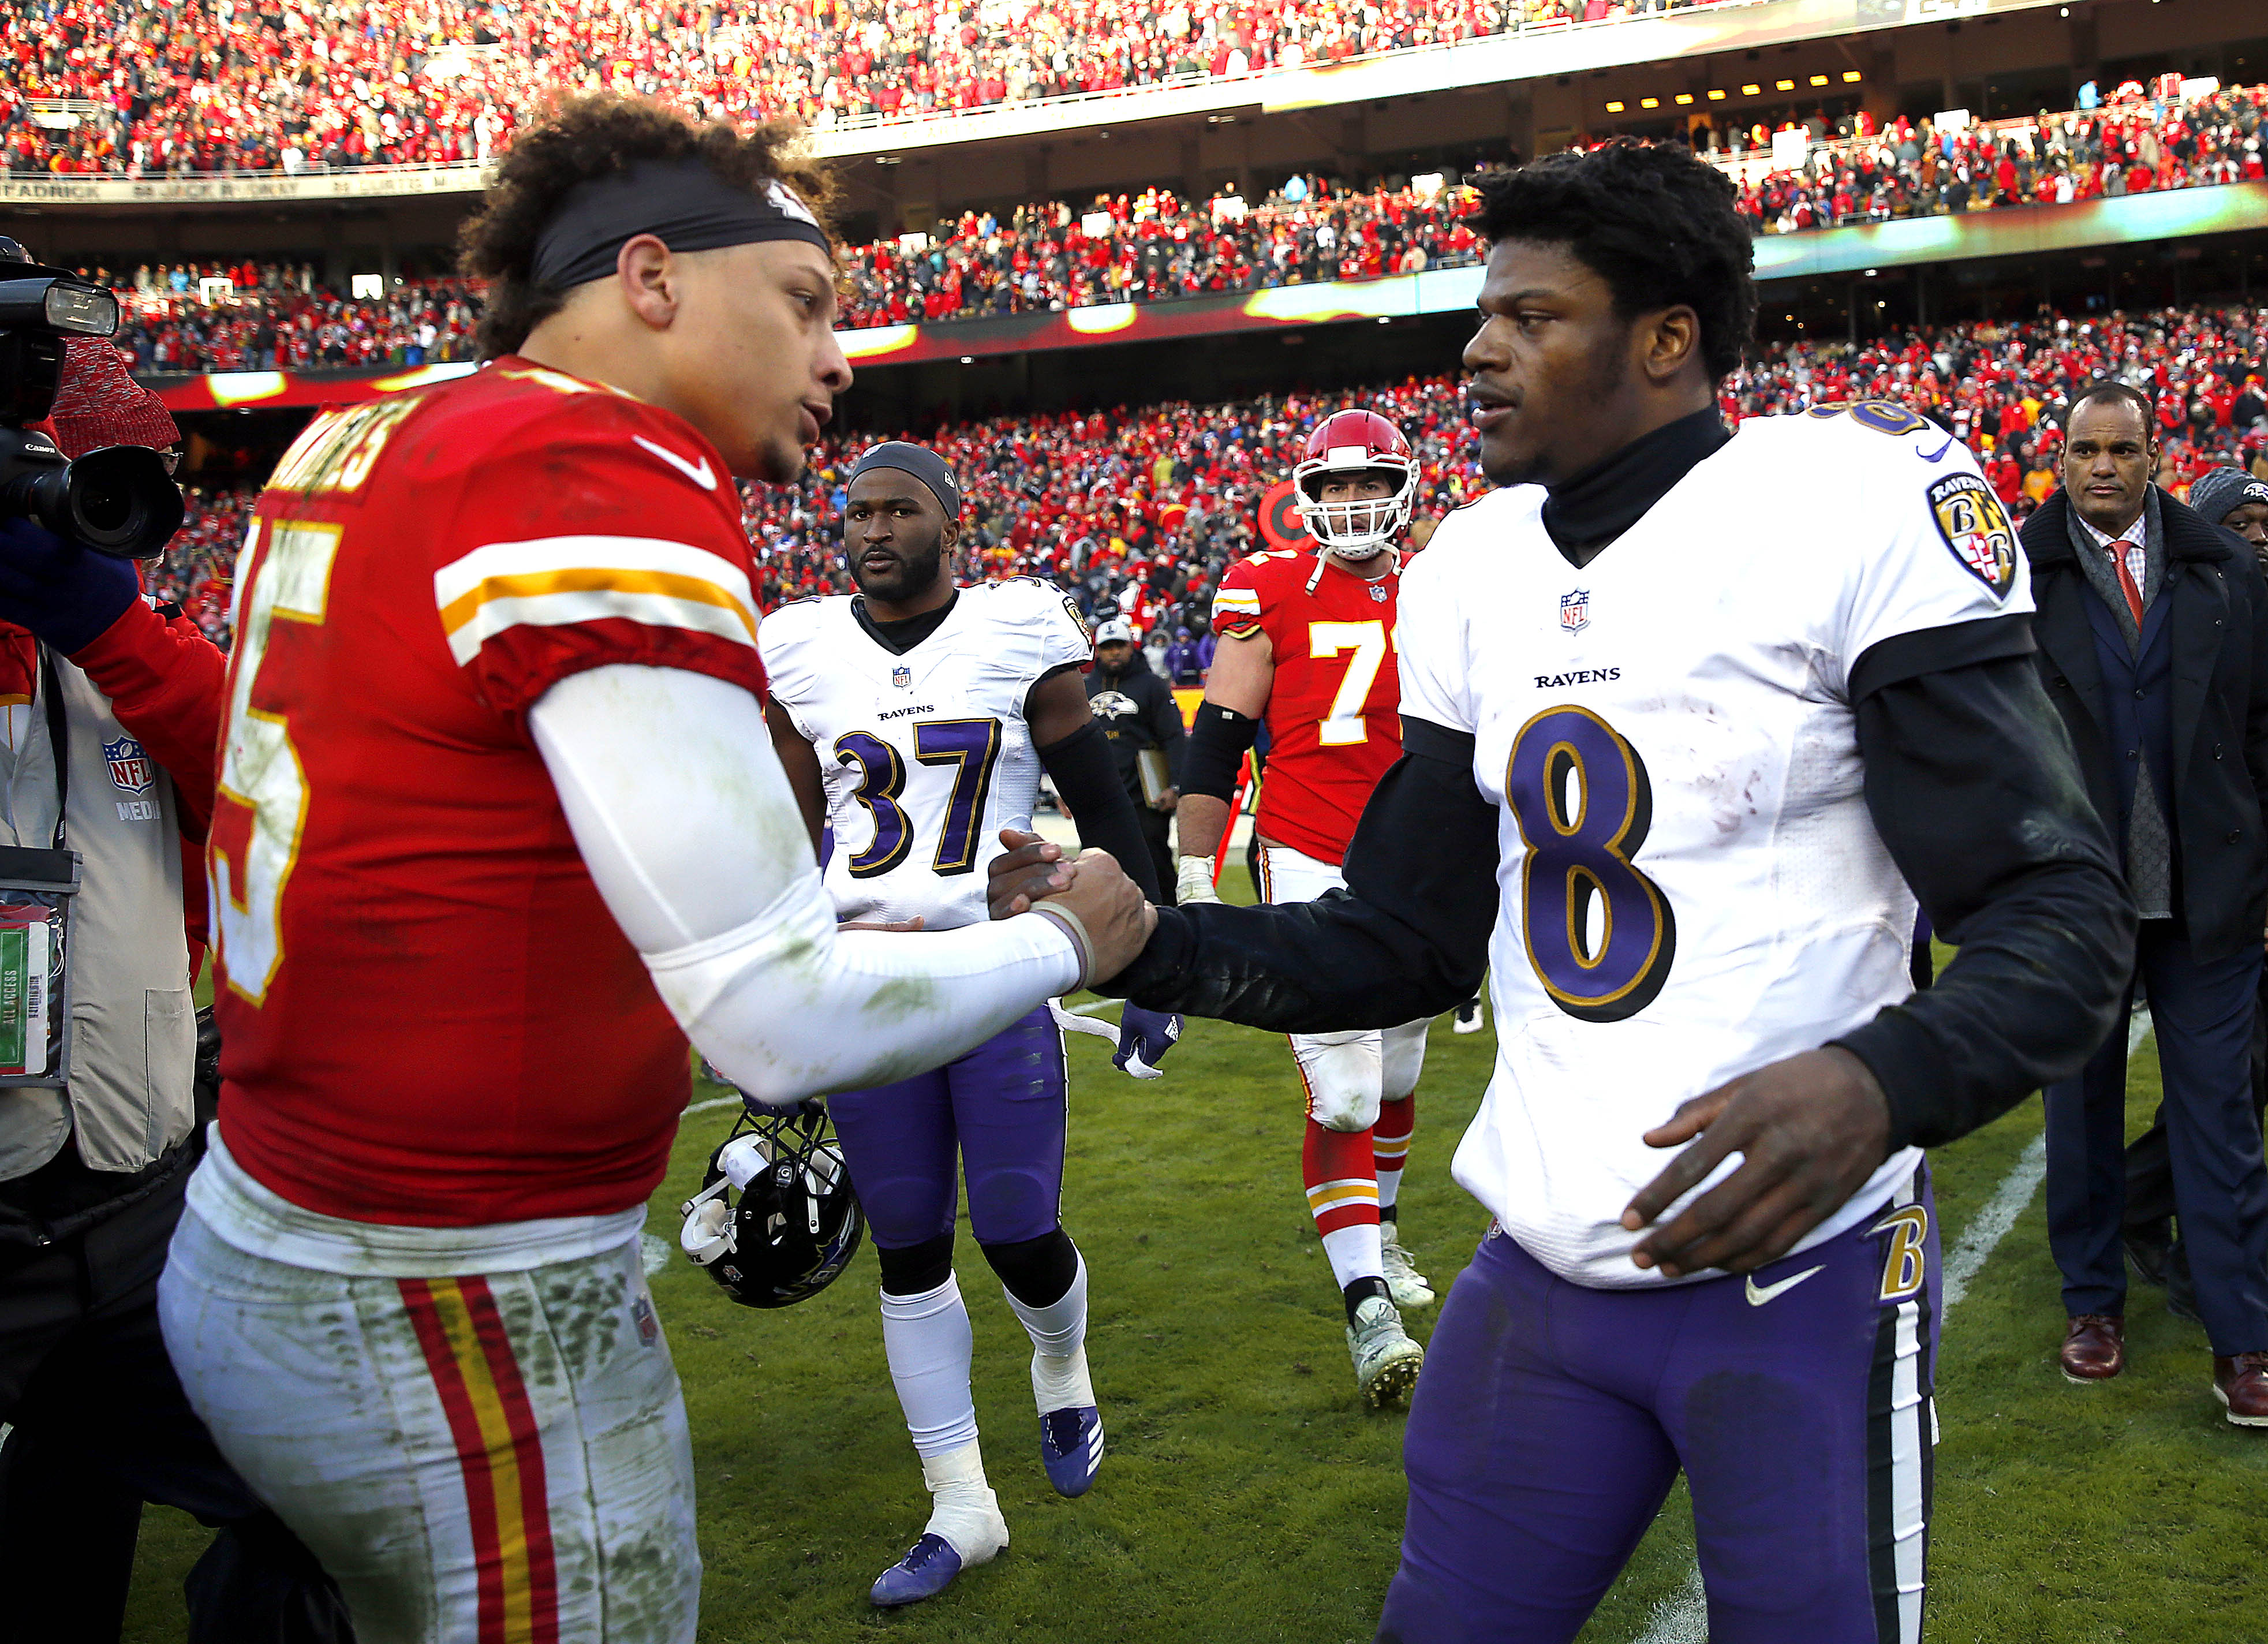 Chiefs quarterback Patrick Mahomes and Ravens quarterback Lamar Jackson have won the last two MVP awards. (Photo by Jamie Squire/Getty Images)